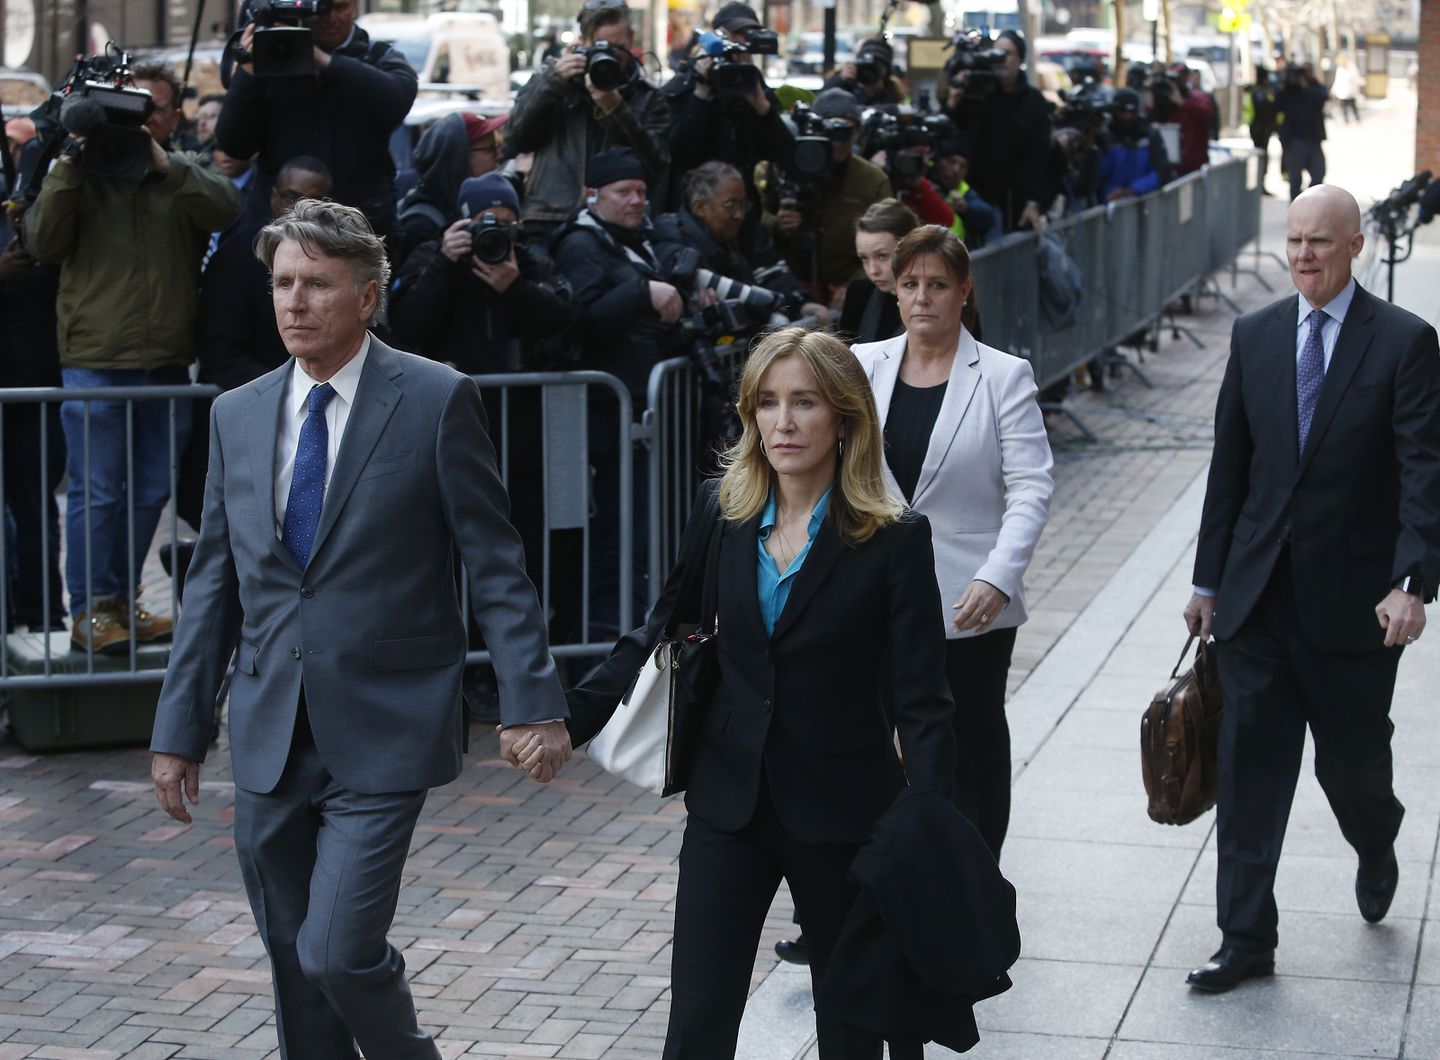 Guidance counselors raised red flags in college admissions scandal